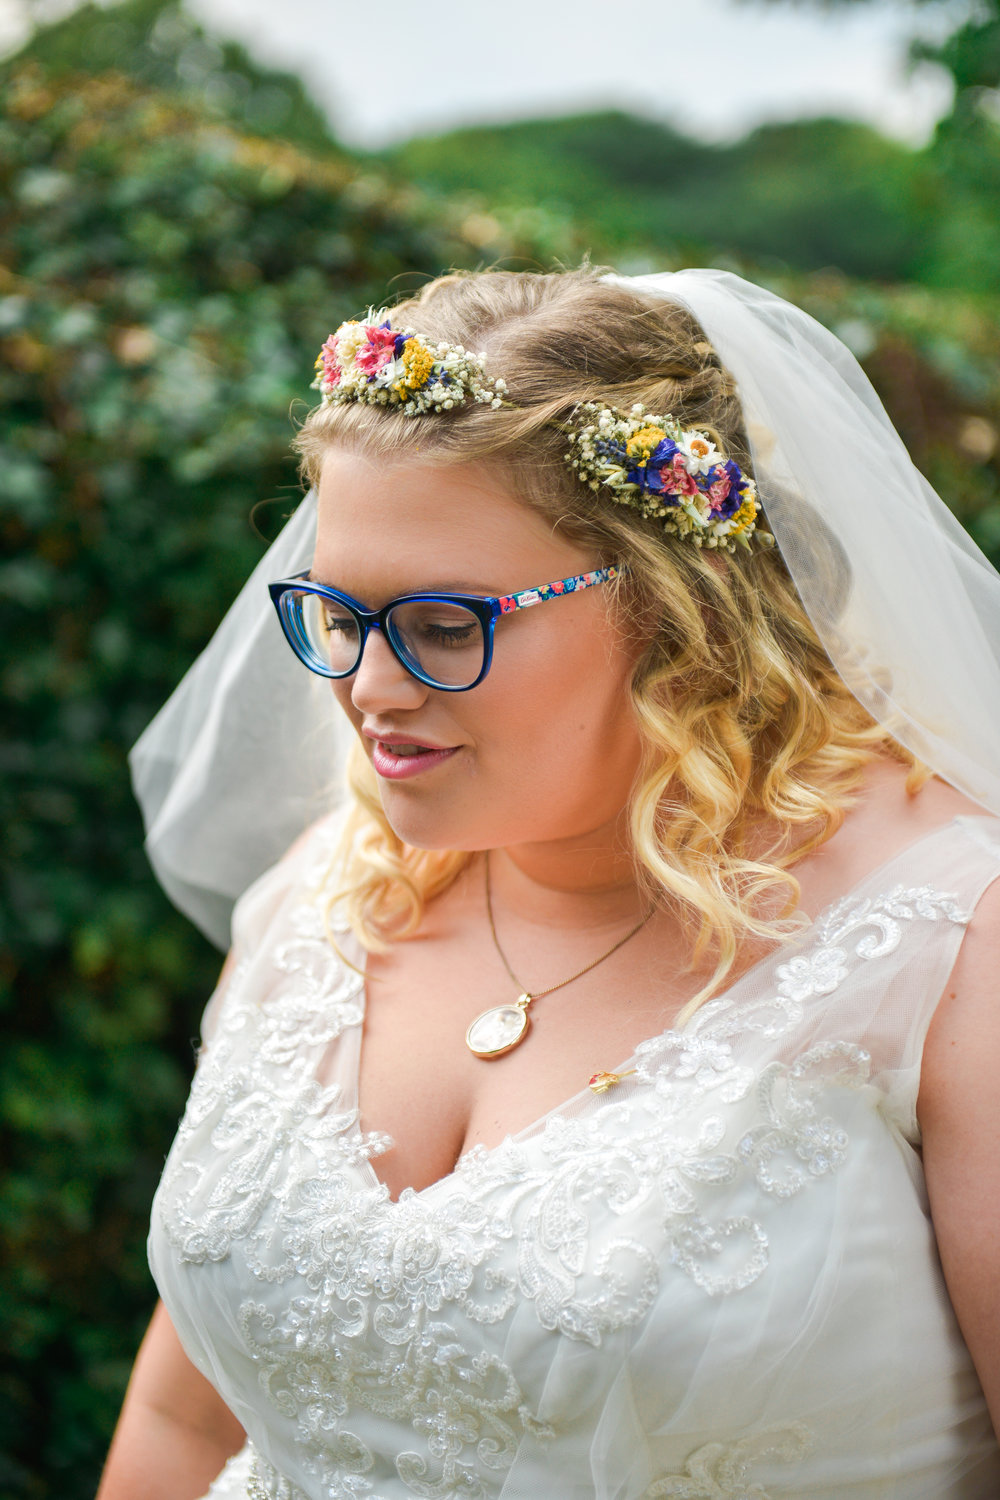 Tamsin plans to wear her flower crown on their first wedding anniversary. -